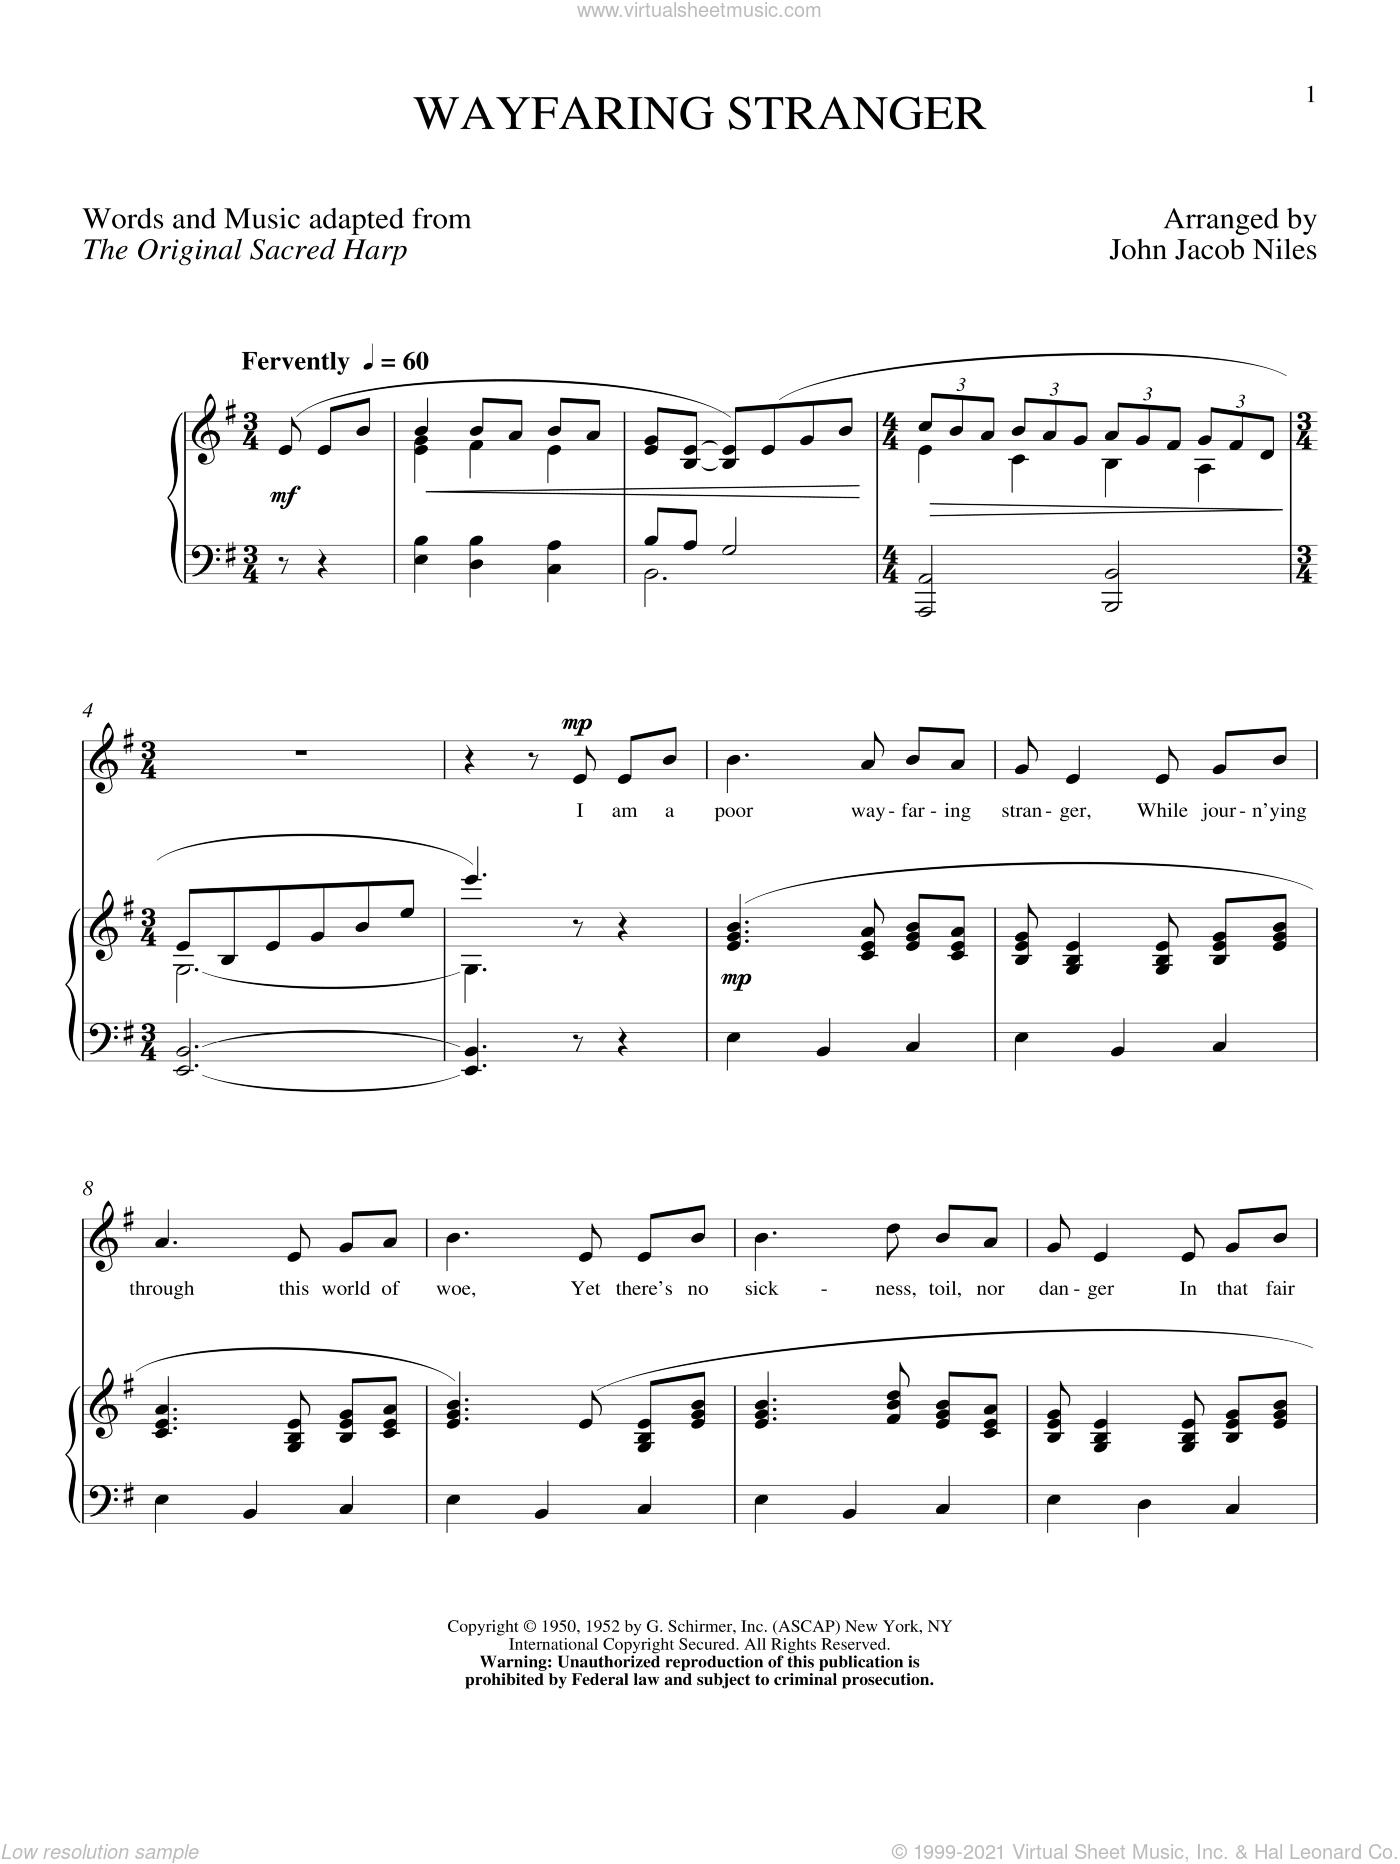 Wayfaring Stranger sheet music for voice and piano (High Voice) by John Jacob Niles, intermediate skill level